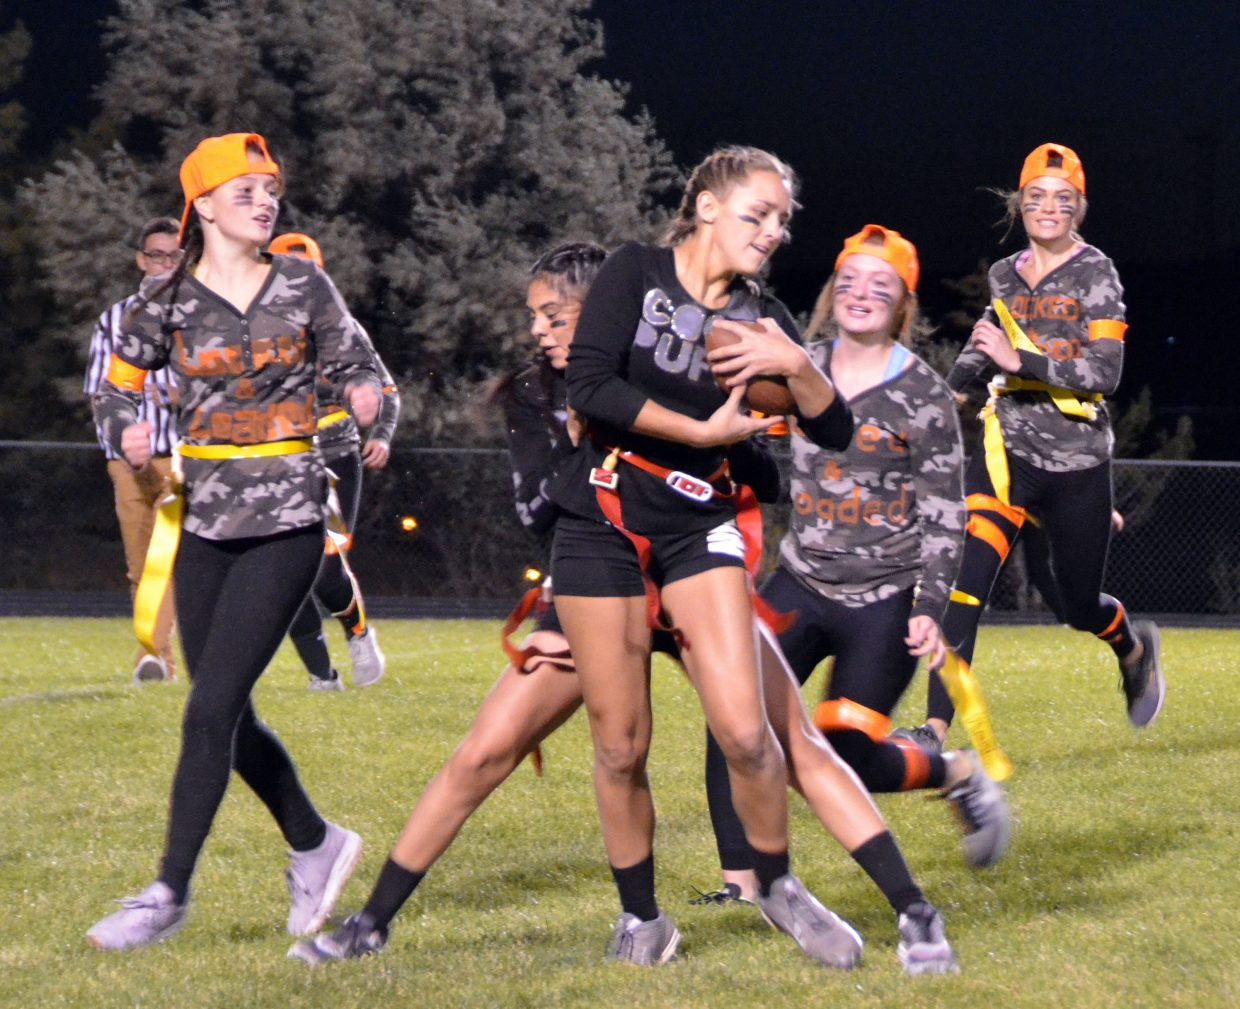 Coco Puffs' Kayla Hampton  looks to get away from the Locked & Loaded defenders during Moffat County High School's Monday Powder Puff Football.